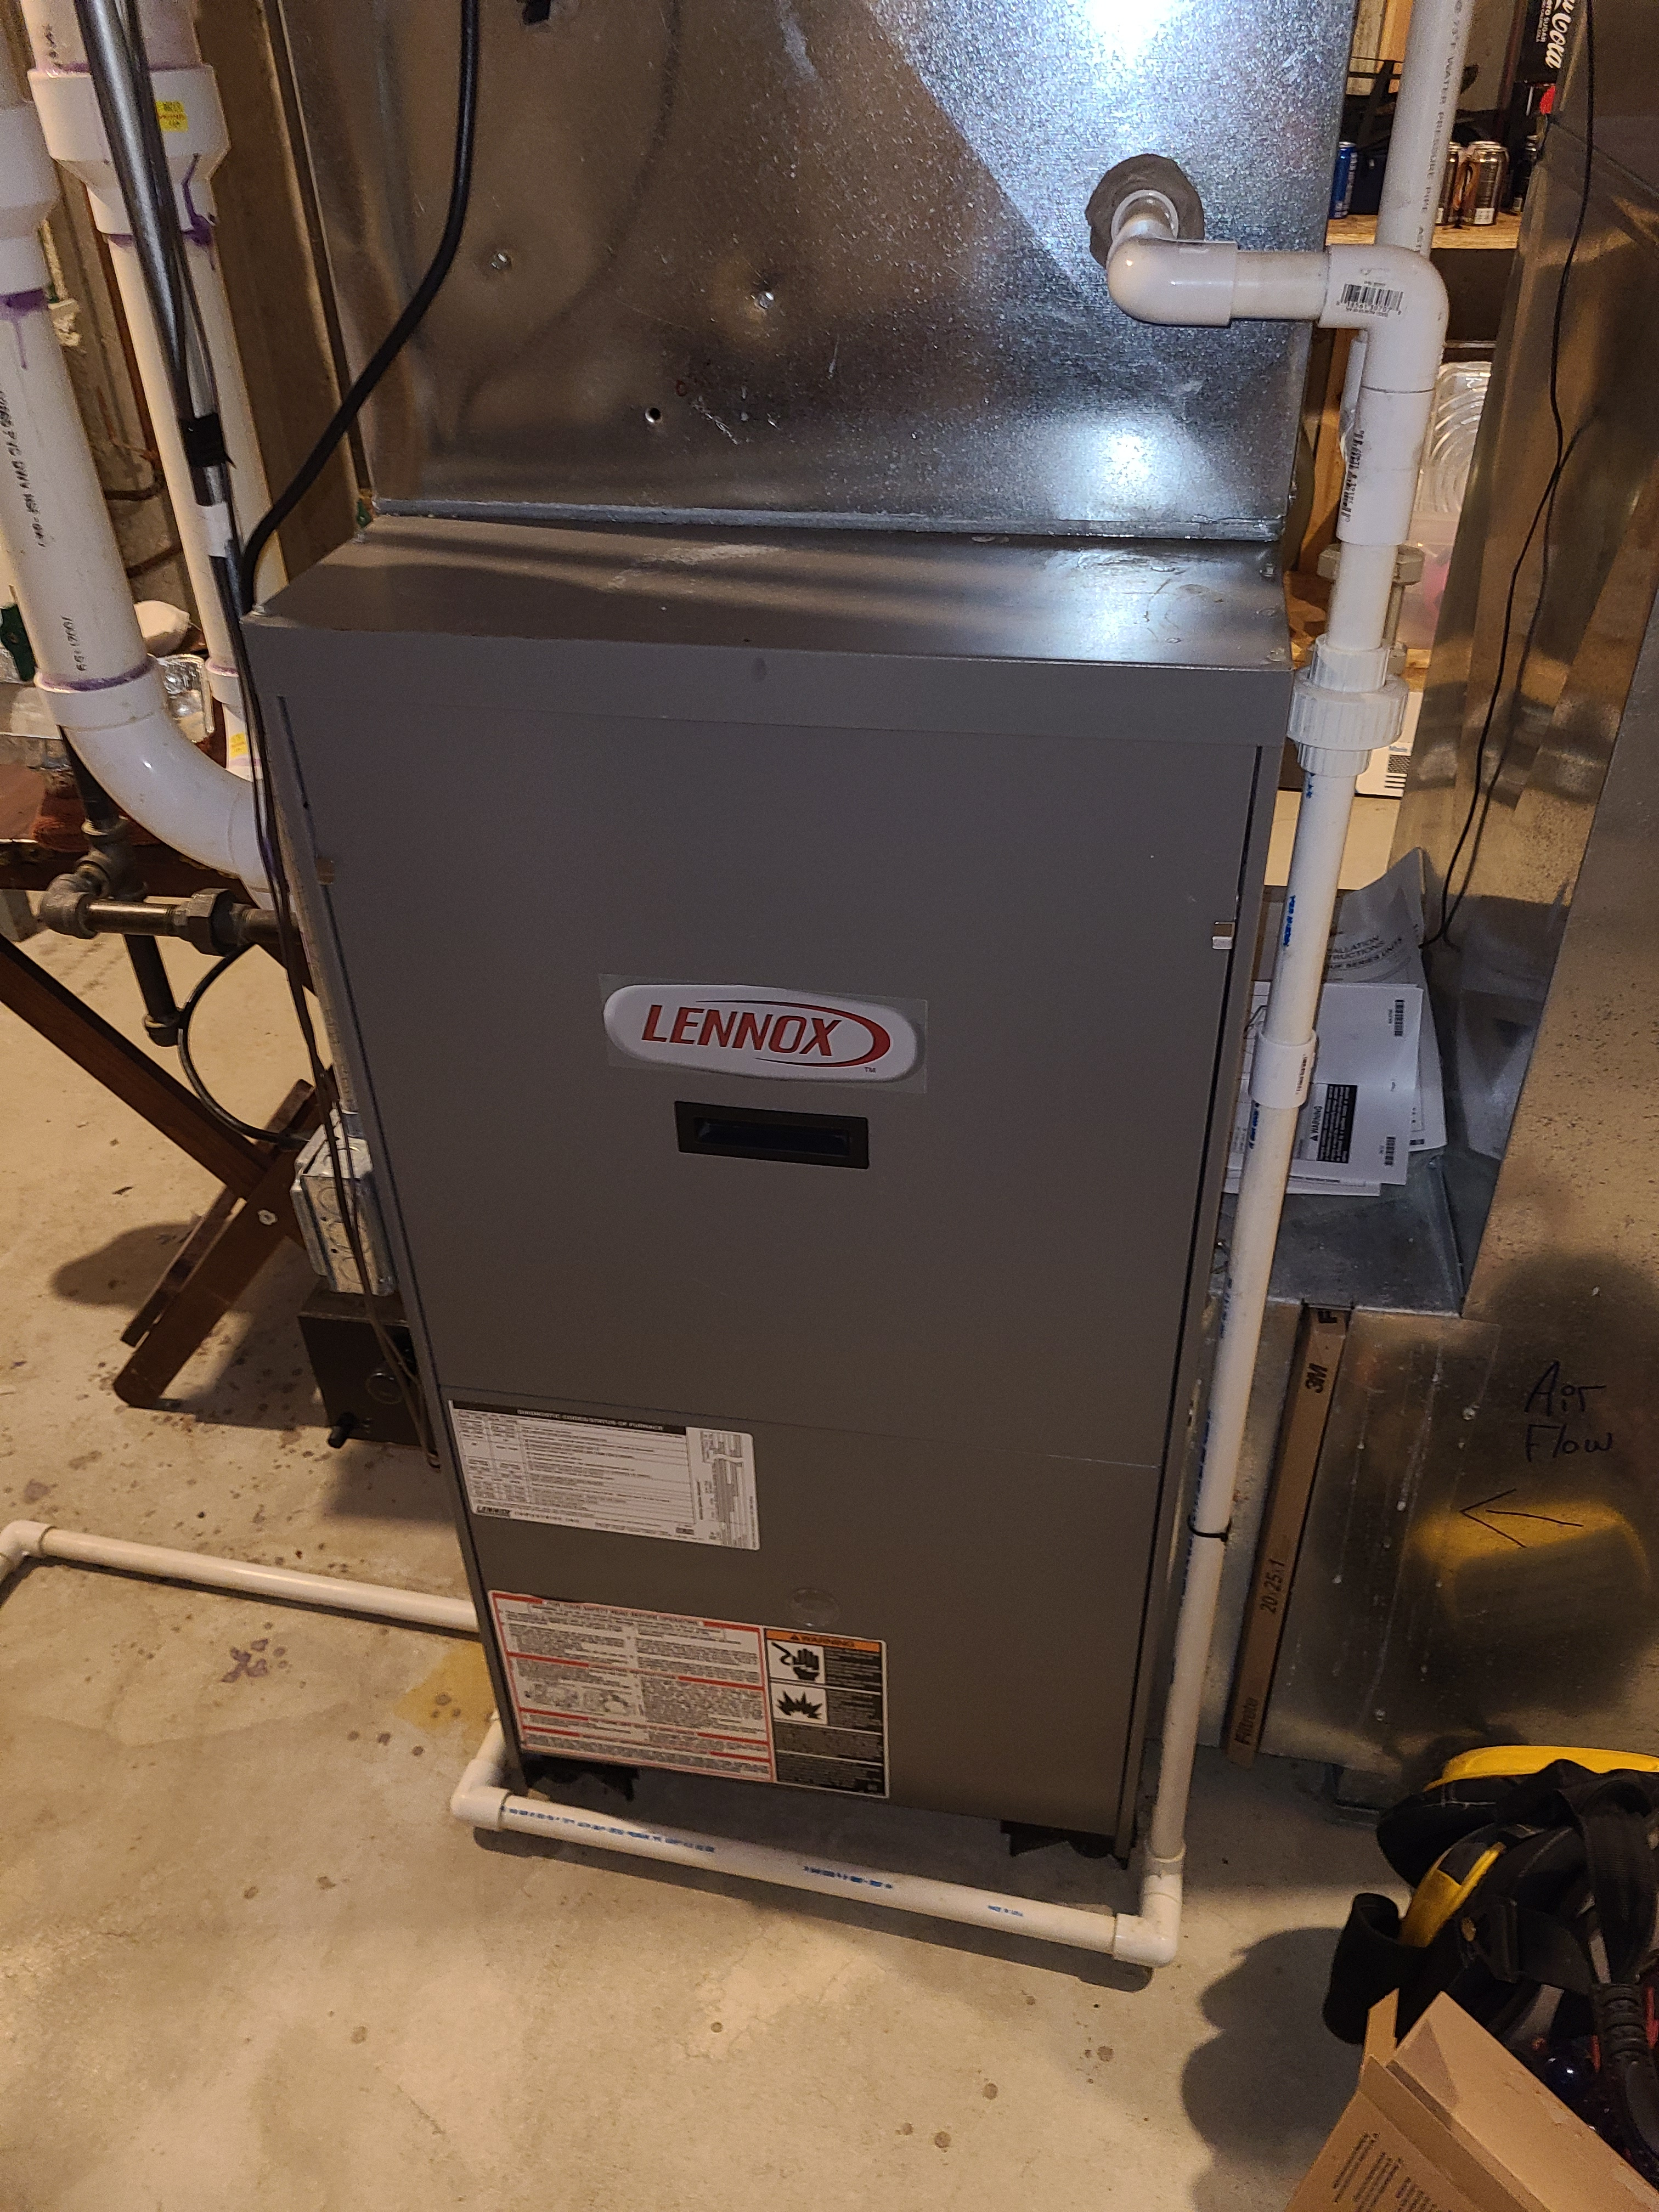 Lennox furnace fall clean and check. System tuned up and ready for winter.